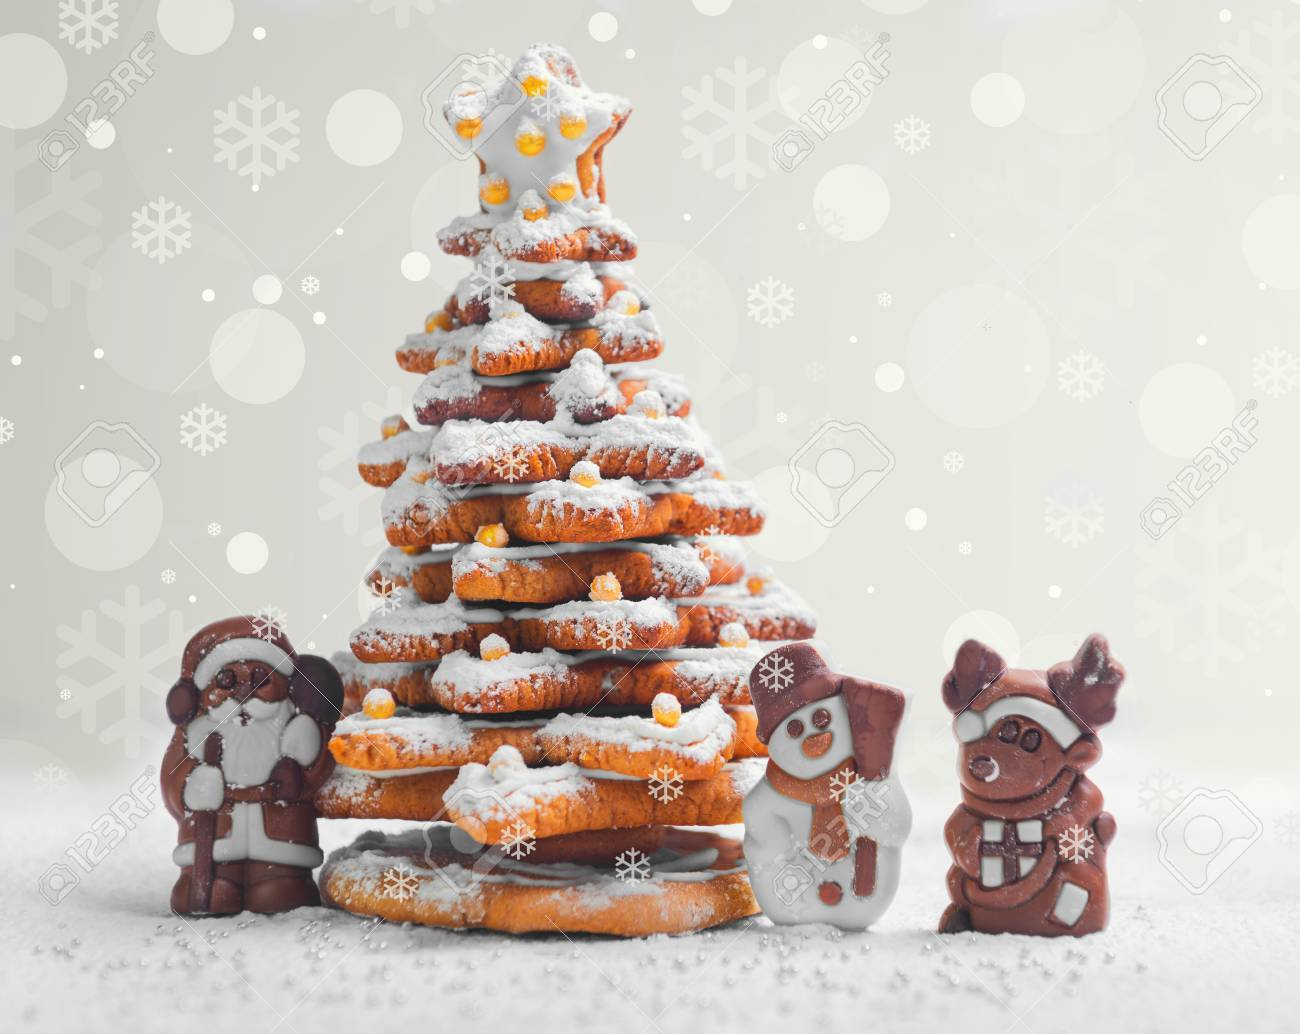 New Year Christmas Card Gingerbread Christmas Tree Cookies Decorated